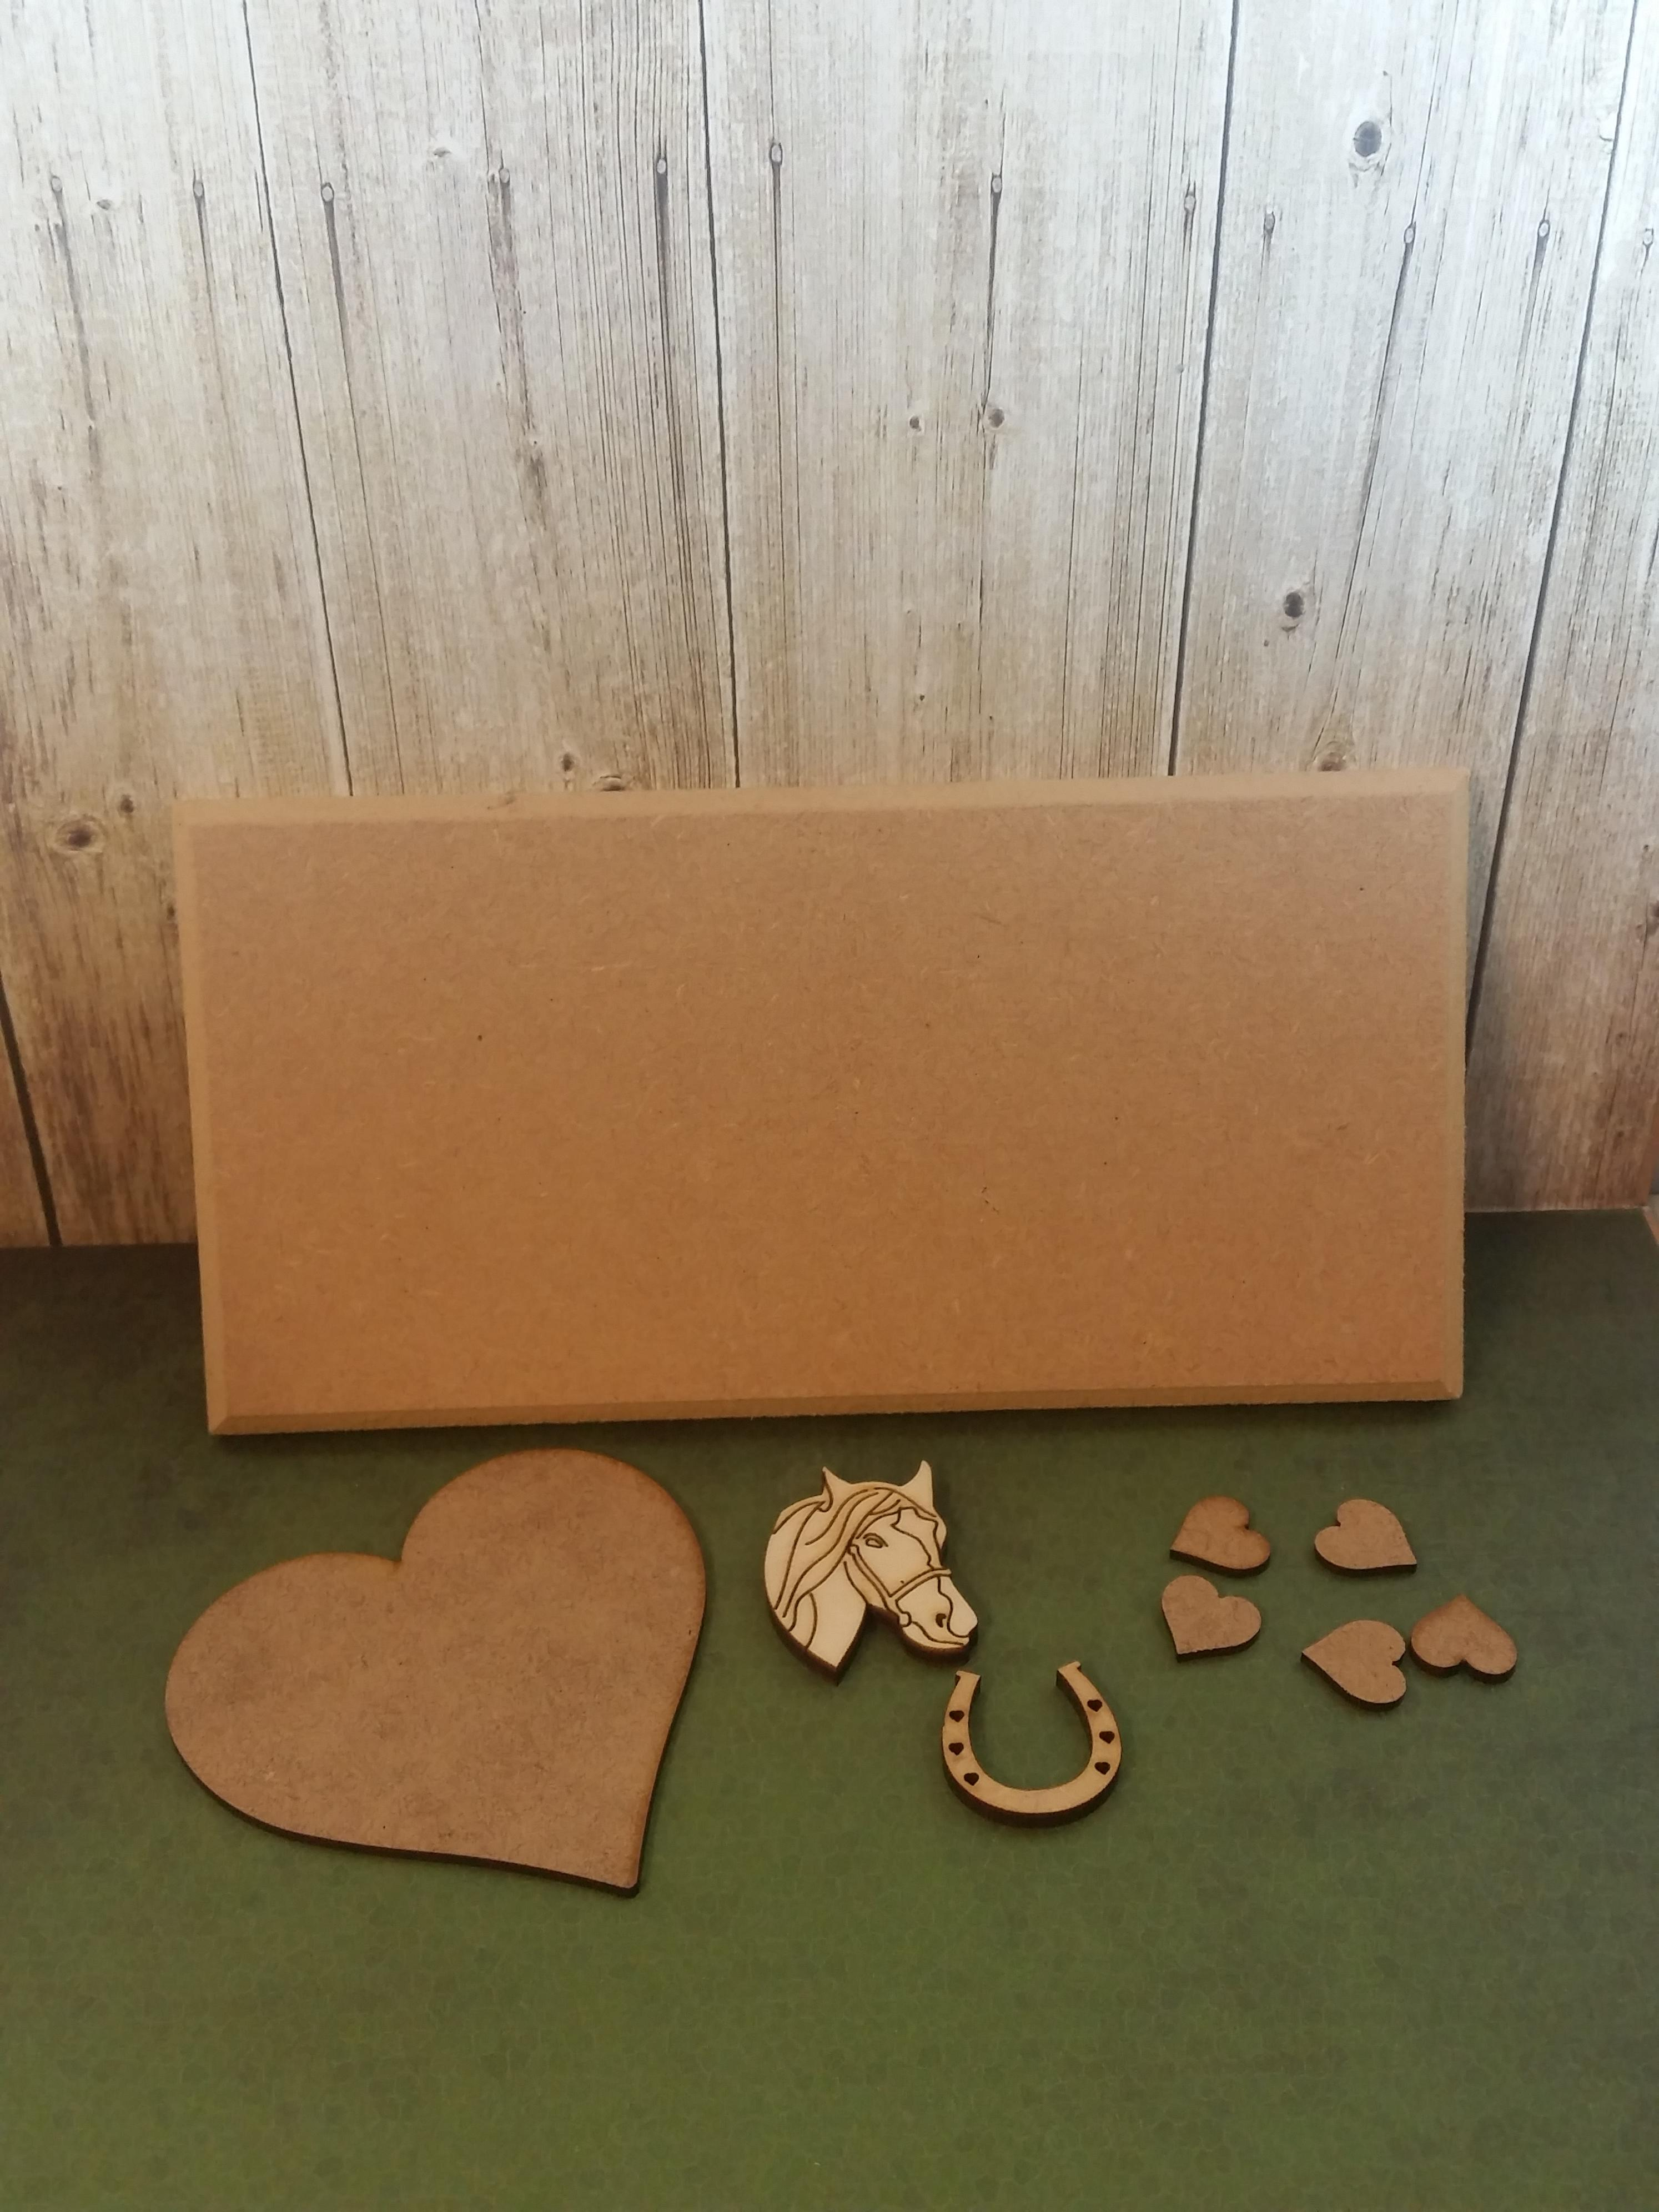 horse plaque kit for you to make and paint how you wish